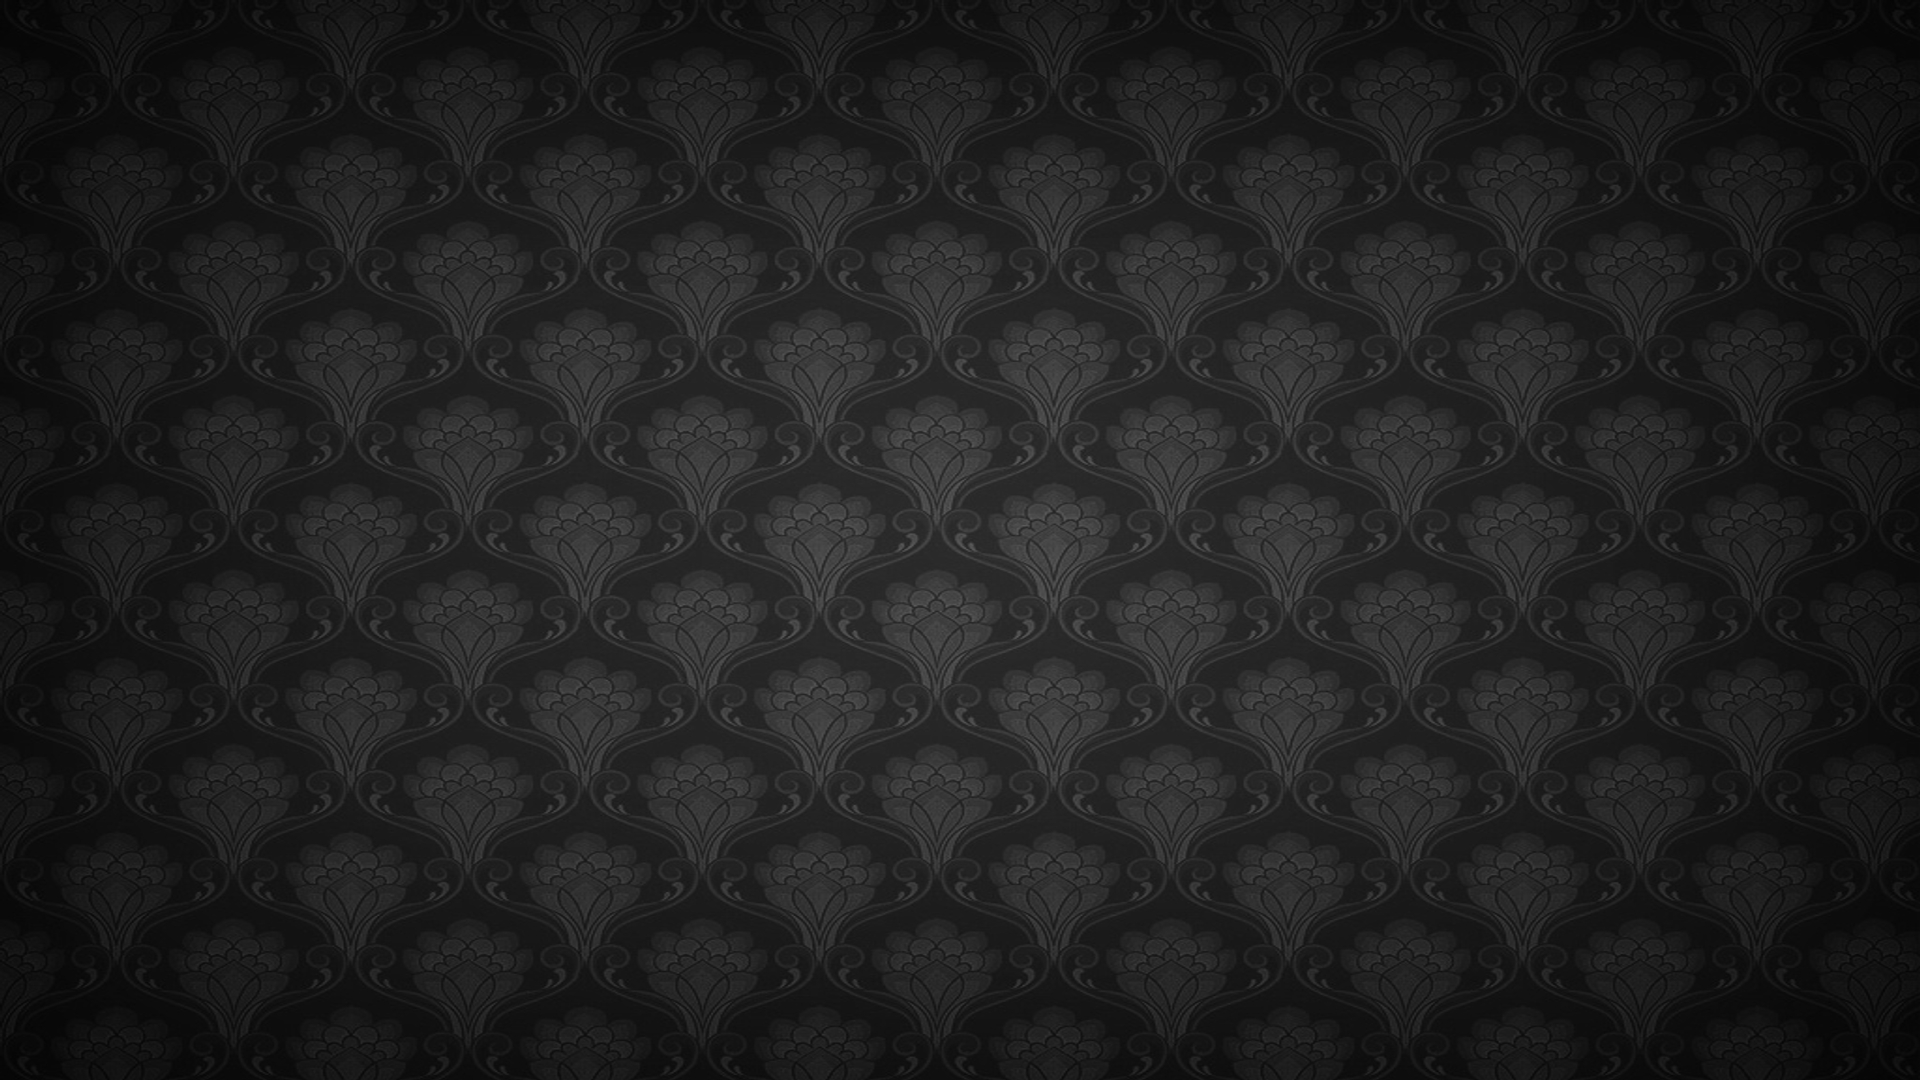 black floral wallpaper submitted by waggly bean scratched black wall 1920x1080